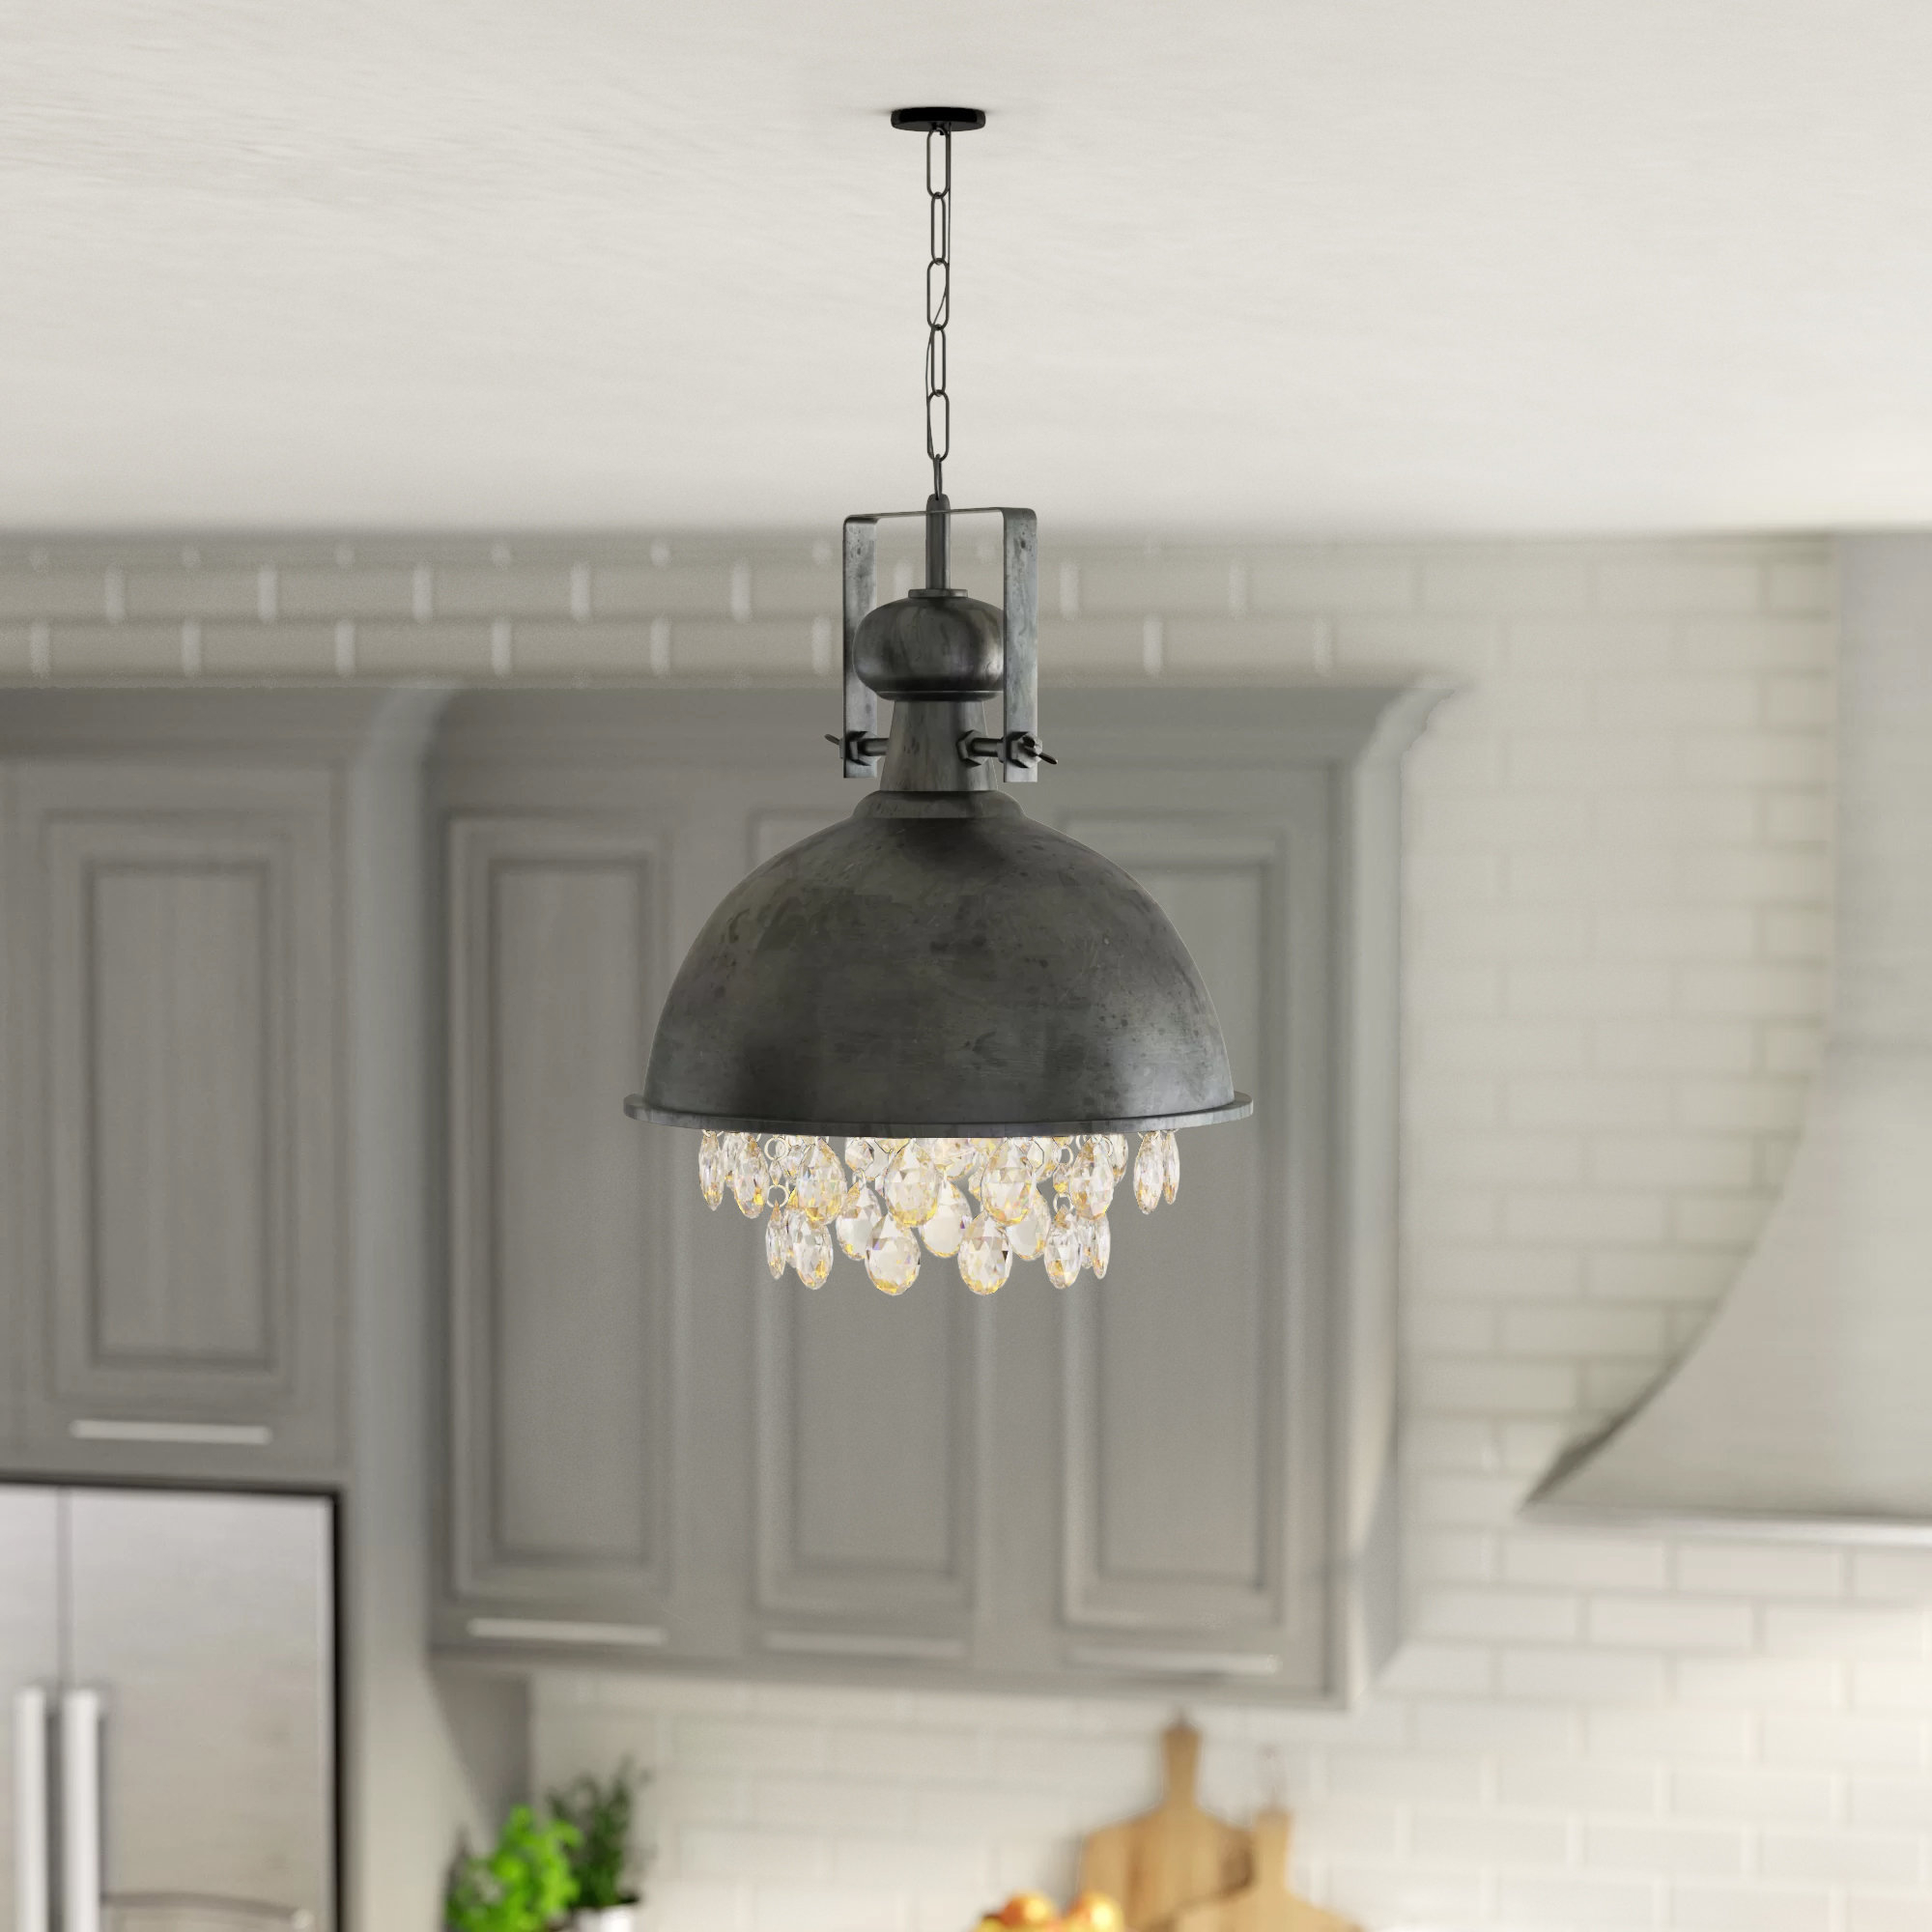 Monadnock 1 Light Single Dome Pendants Inside Best And Newest Rosenbloom 1 – Light Dome Pendant (View 10 of 20)